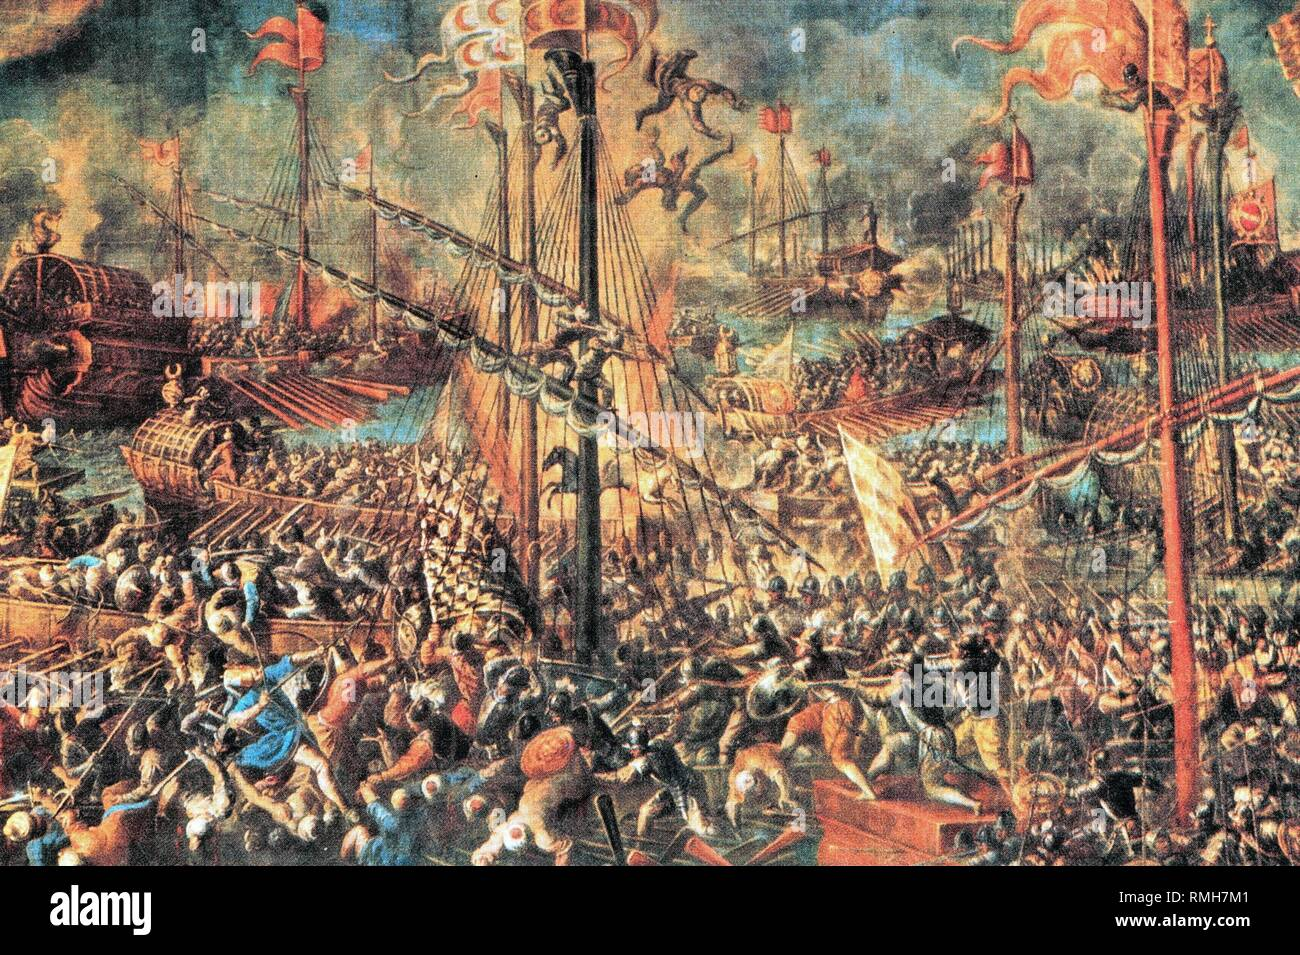 Illustration of the Battle of Lepanto.The fleet of Spain, Venice and of the Pope completely defeated the Turkish fleet in a crash on October 7, 1571, under the leadership of Don Juan d' Austria in the Gulf of Lepanto off the Greek coast. - Stock Image